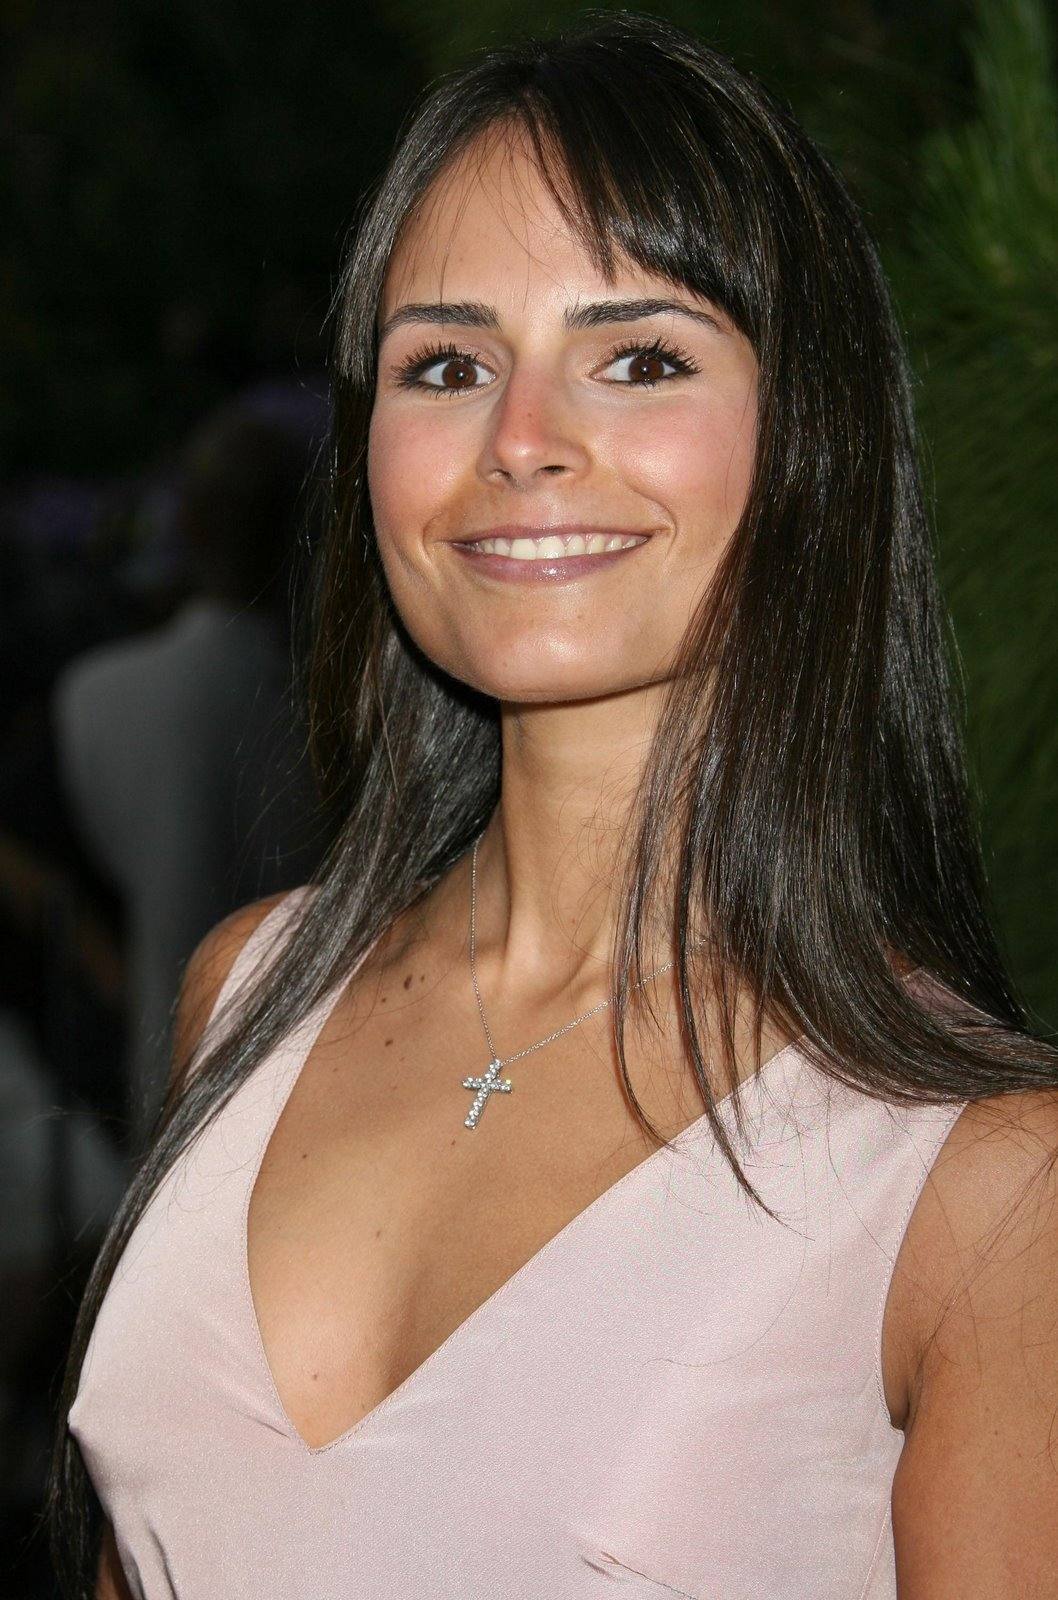 Jordana Brewster hot photos